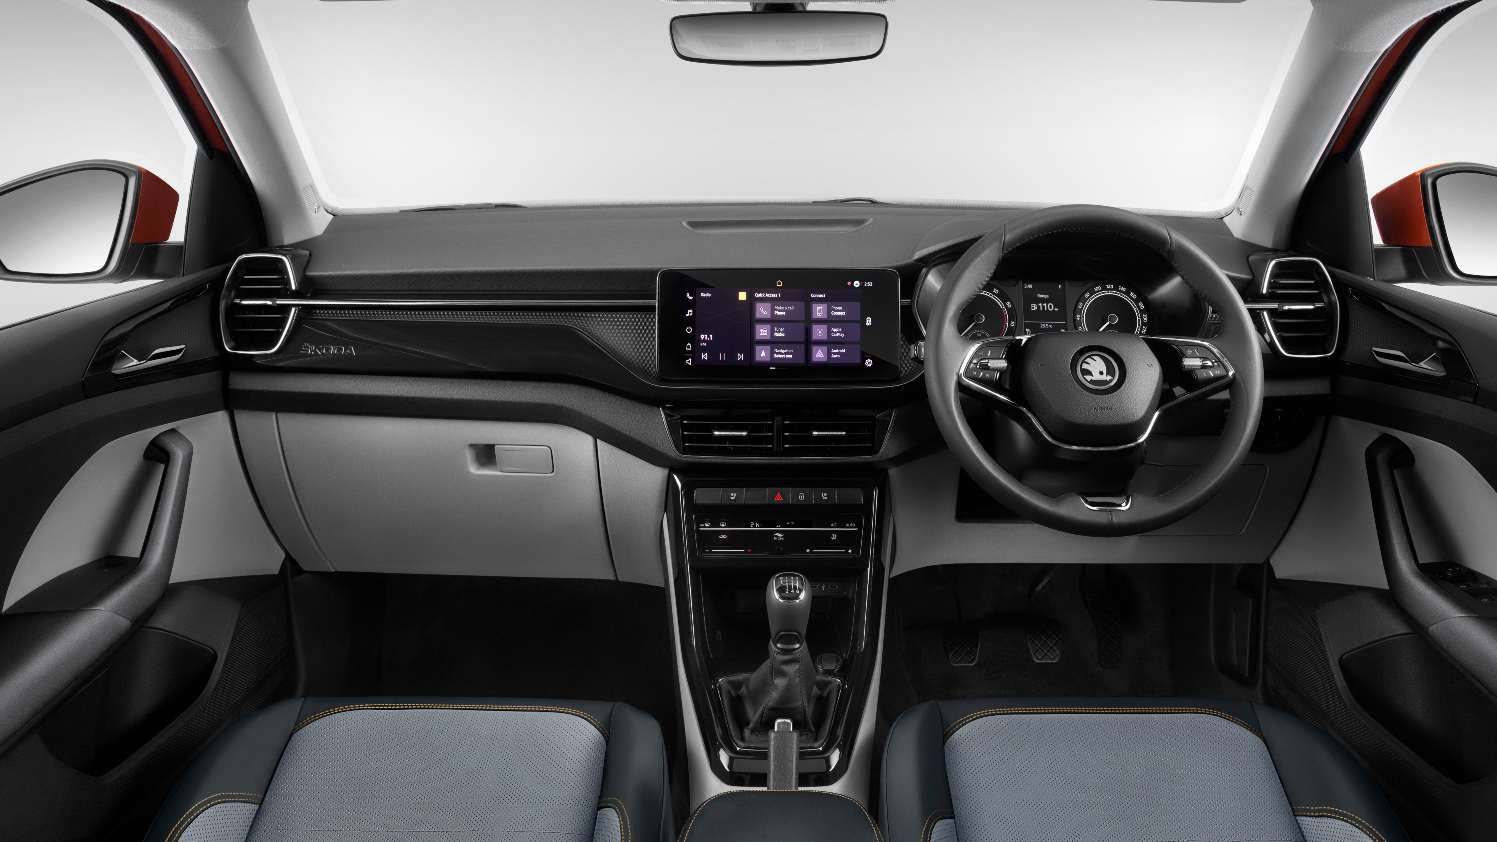 10-inch touchscreen on the Ambition and Style versions; base Active gets a 7.0-inch unit. Image: Skoda